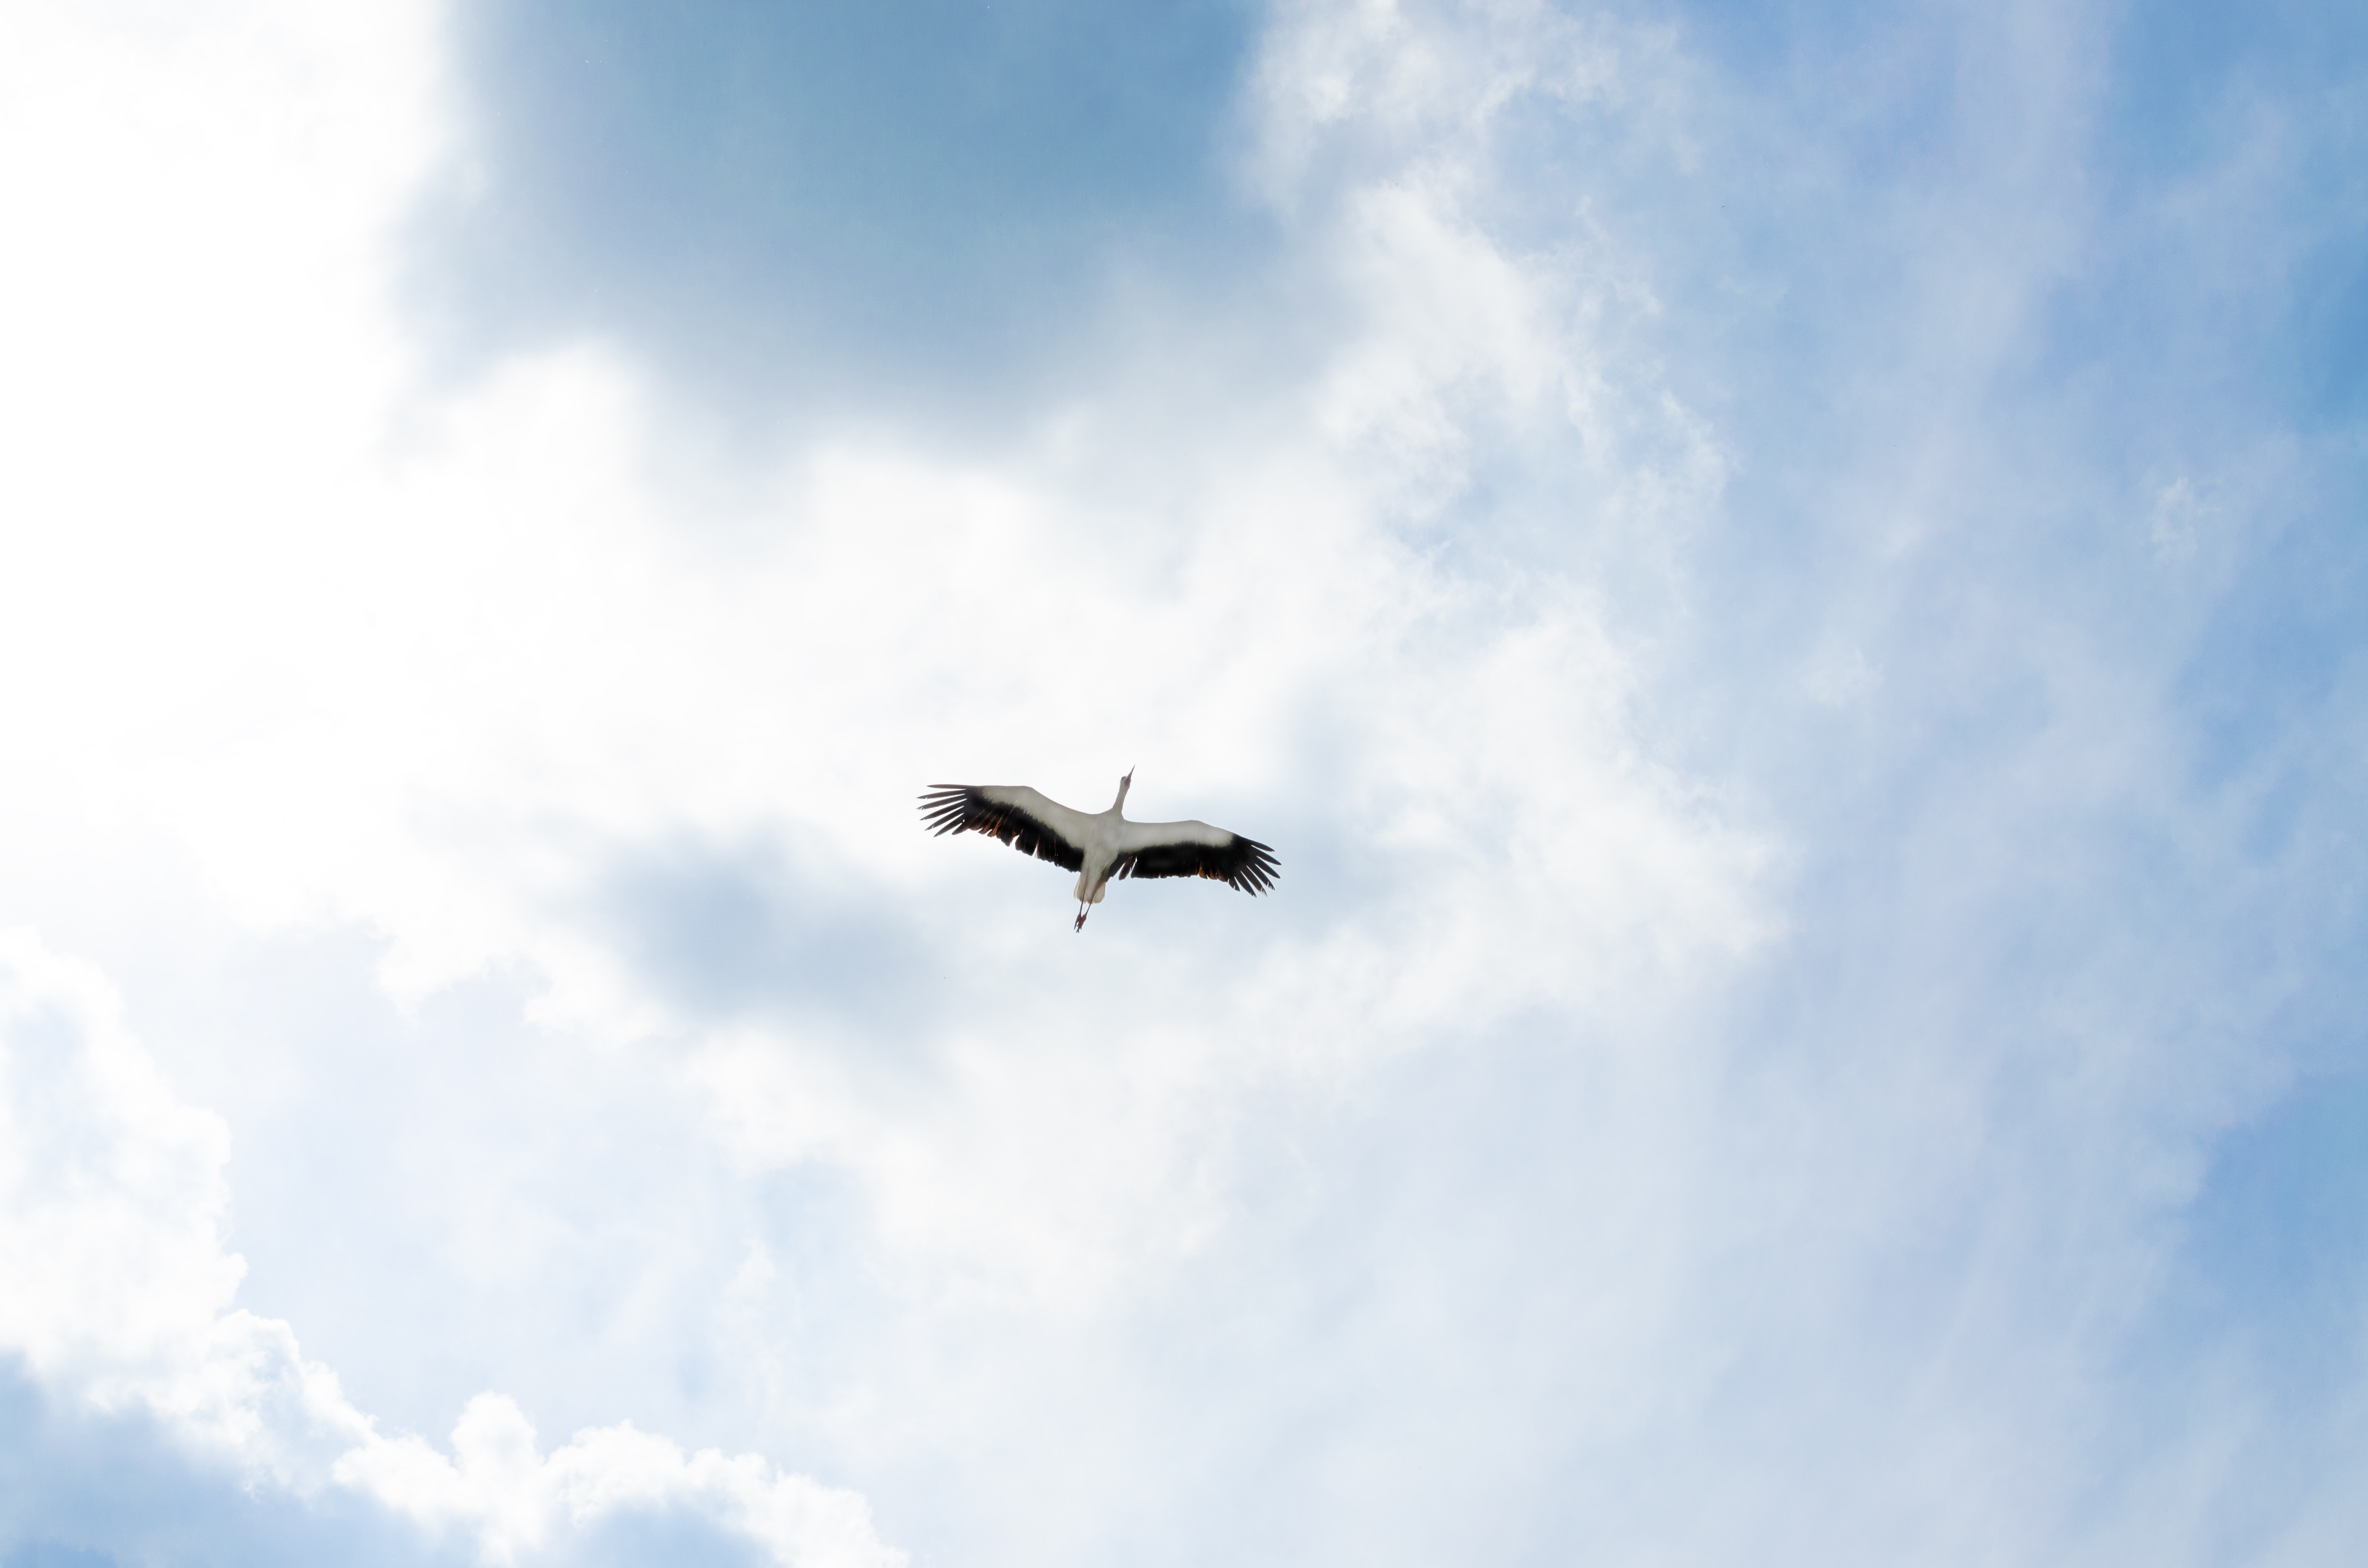 Image of a bird flying with a blue sky behind it.